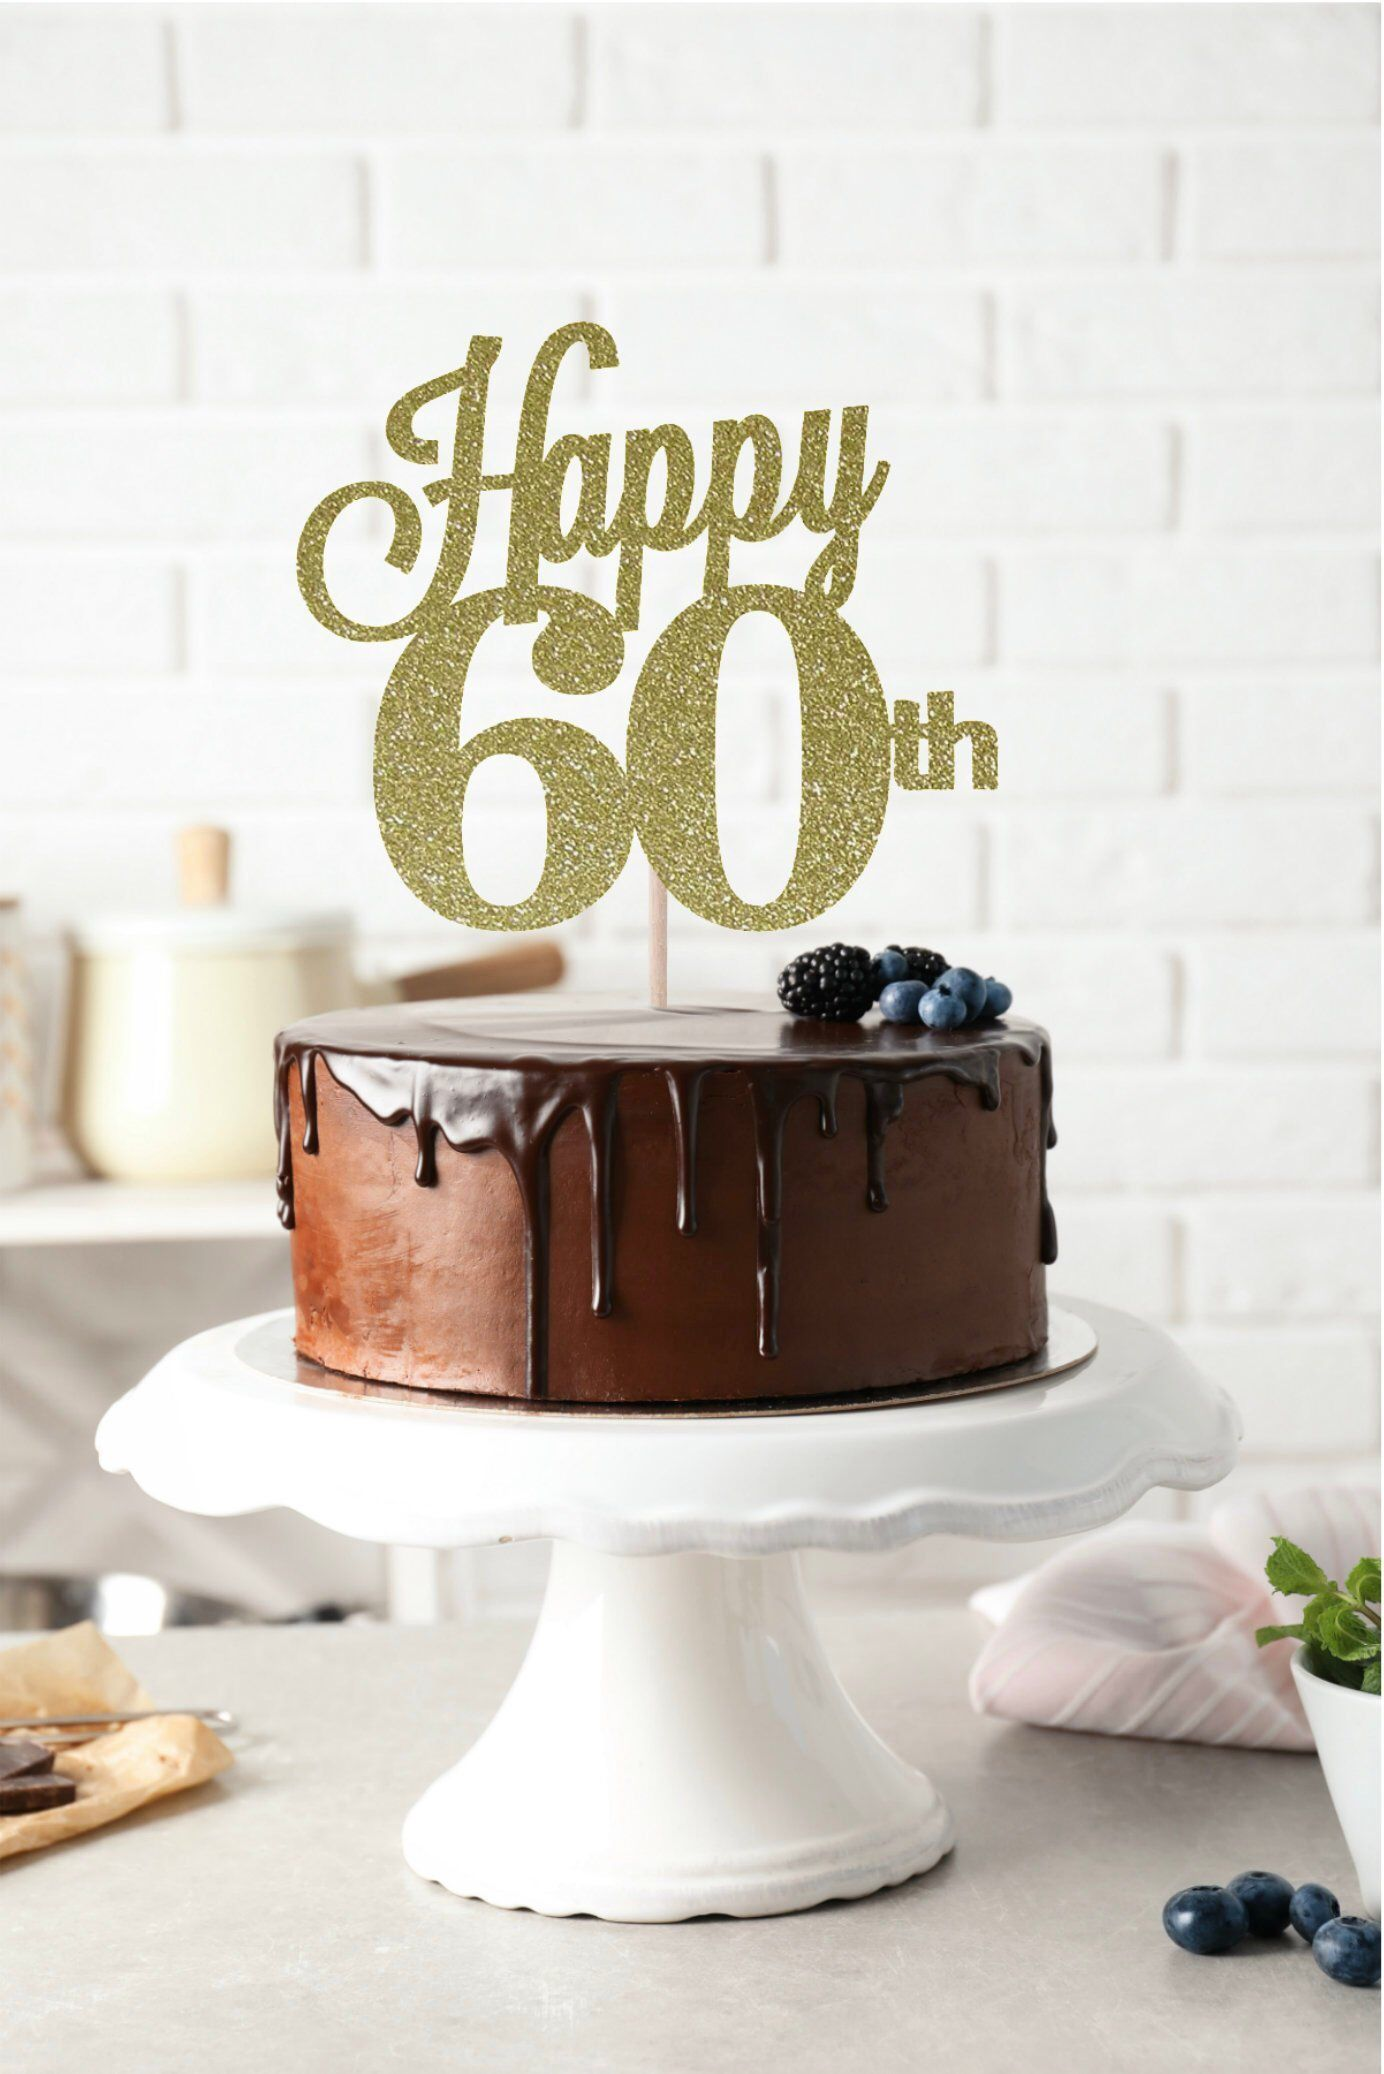 Admirable Happy 60Th Cake Topper 60Th Birthday Cake Topper Birthday Cake Funny Birthday Cards Online Bapapcheapnameinfo